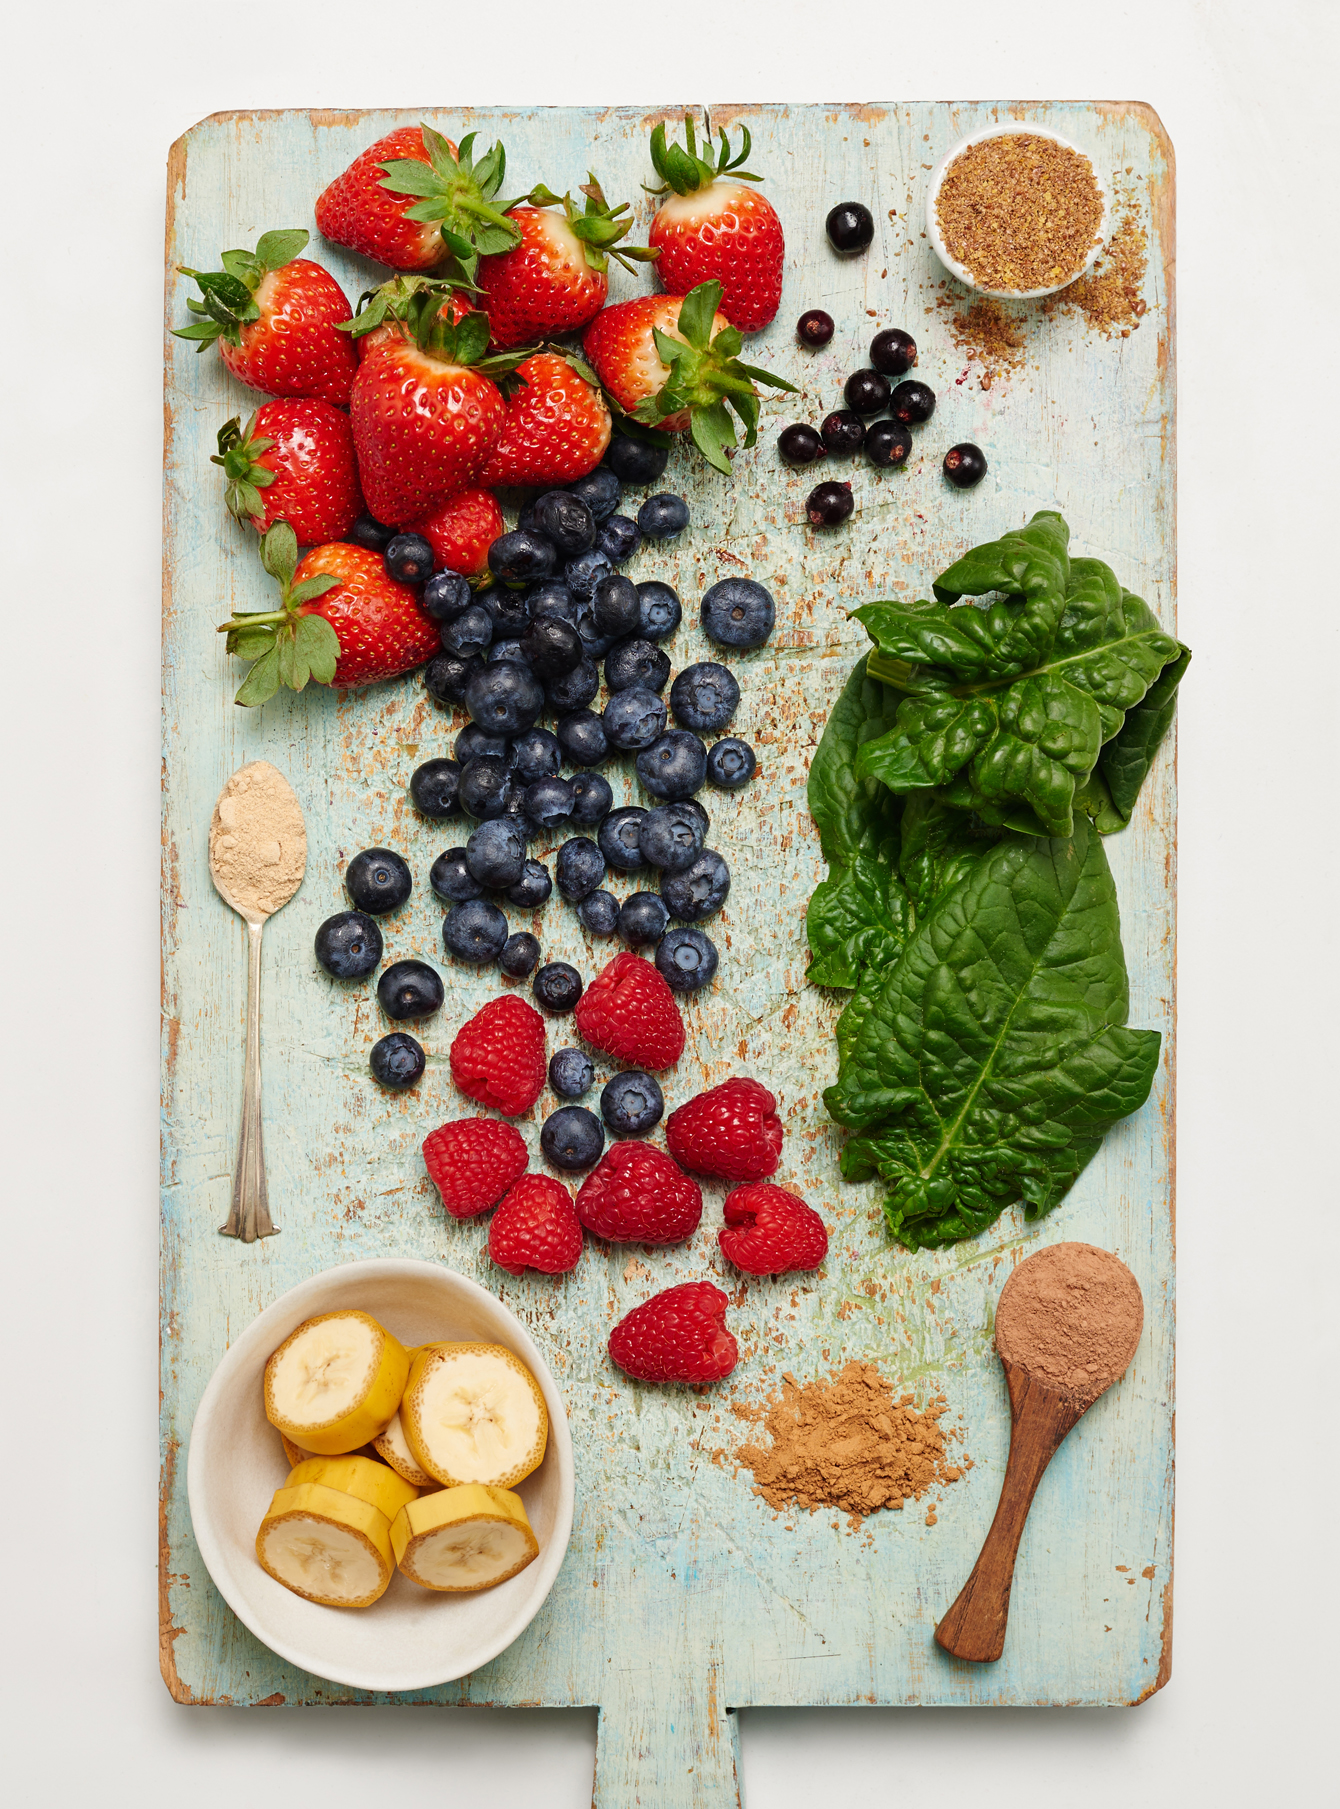 chopped fruit and superfood powders flatlay image